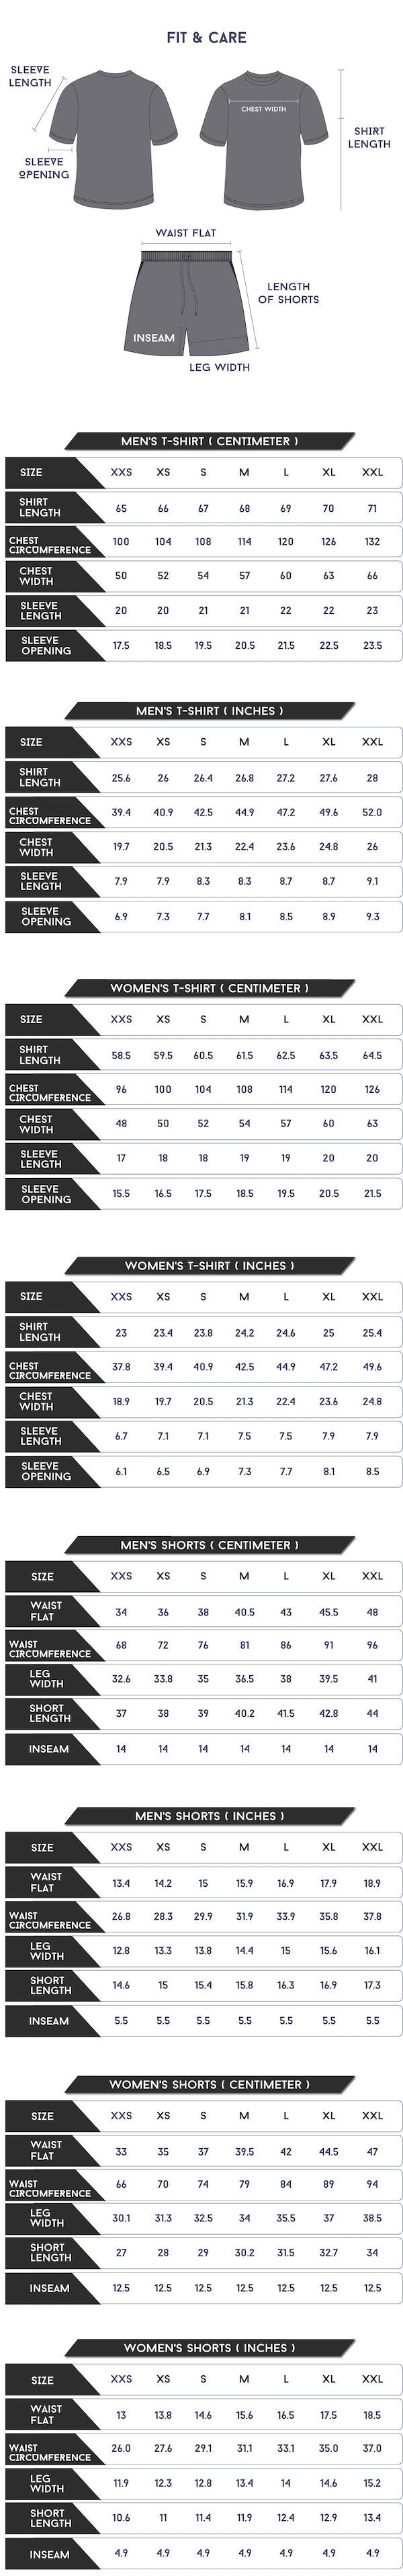 Equilibrium Sleep Set dimensions and size chart